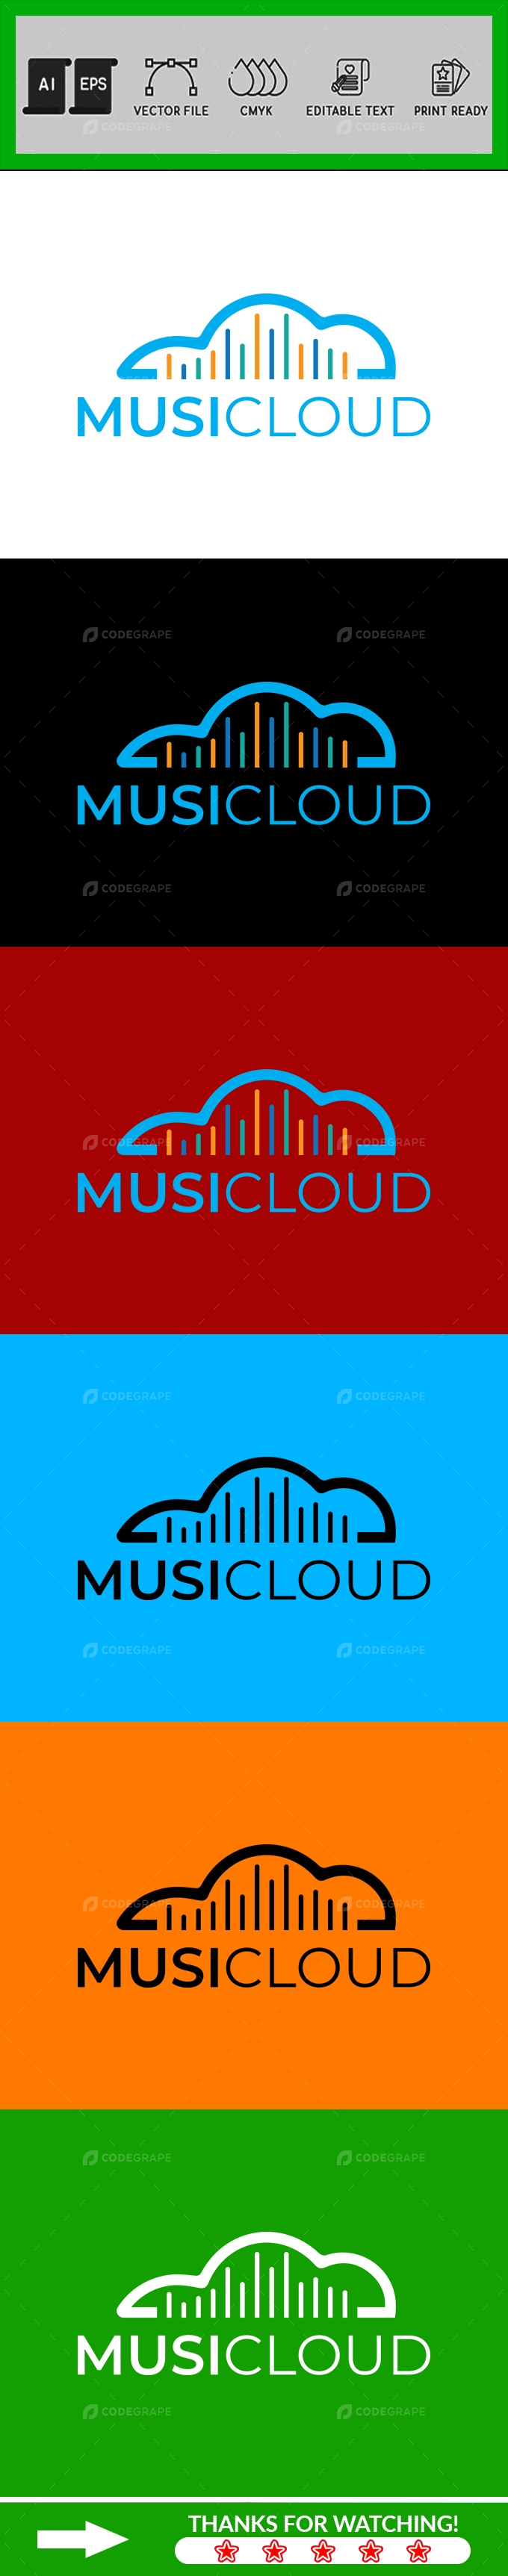 Colorful Sound Wave Music Cloud Logo Design Template